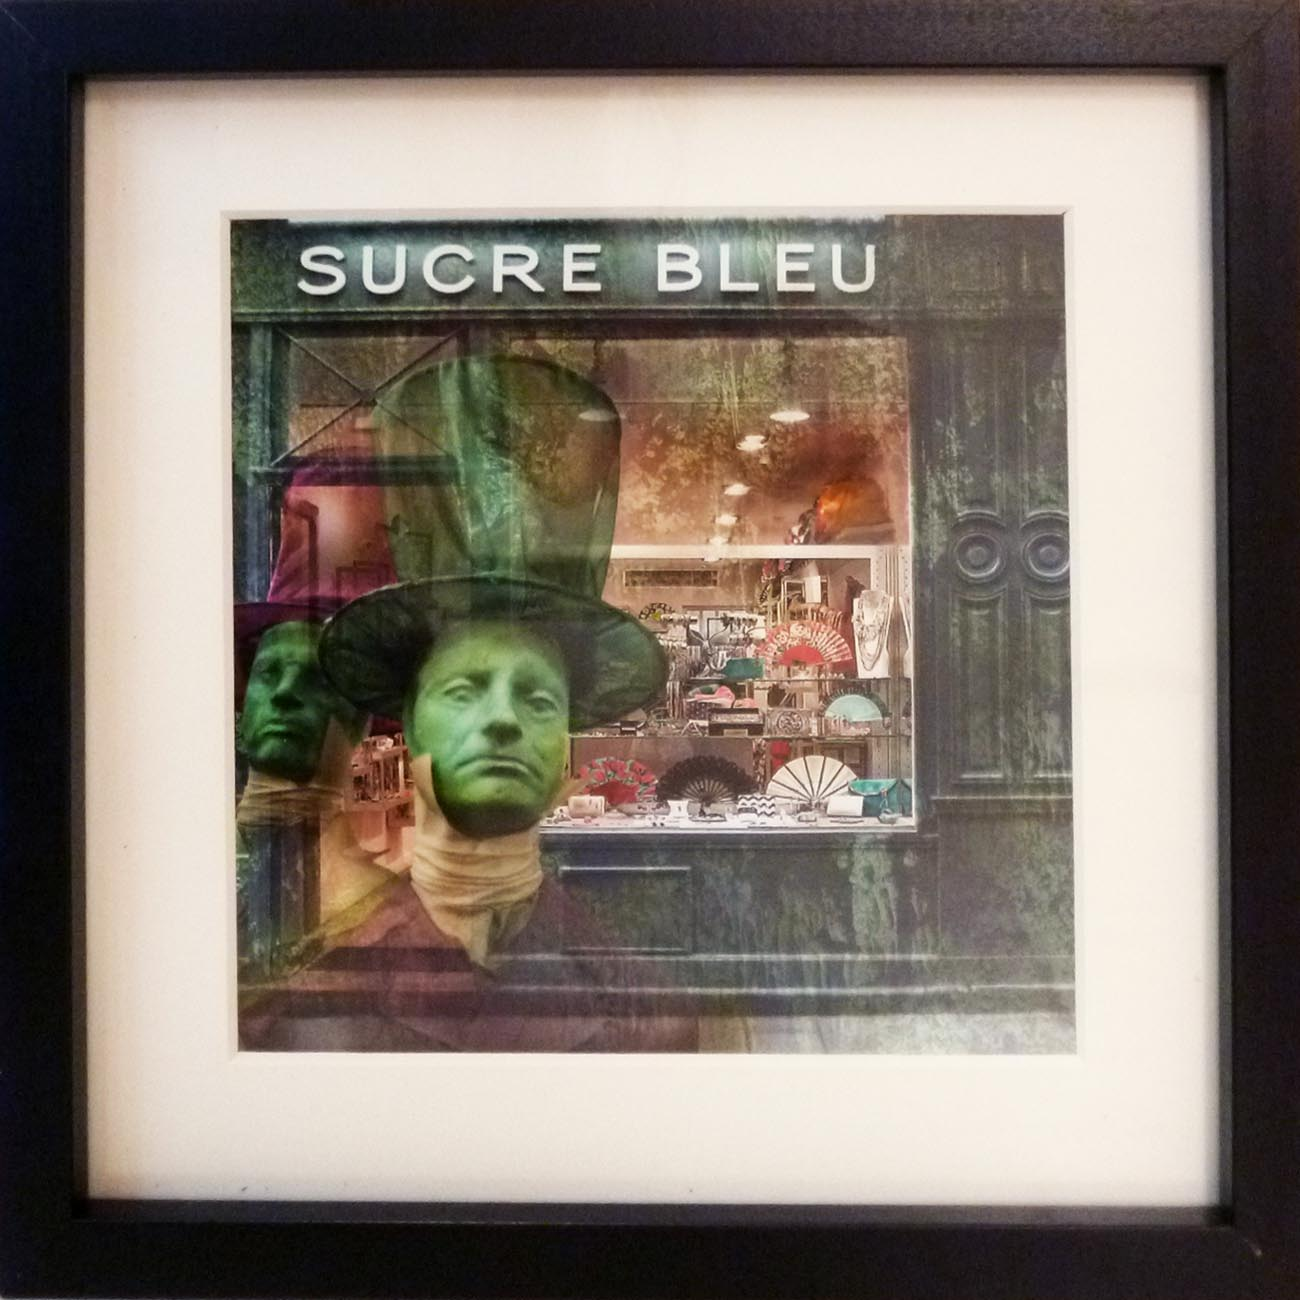 Photographie d'Else Vinaes - Boutique Sucre bleu